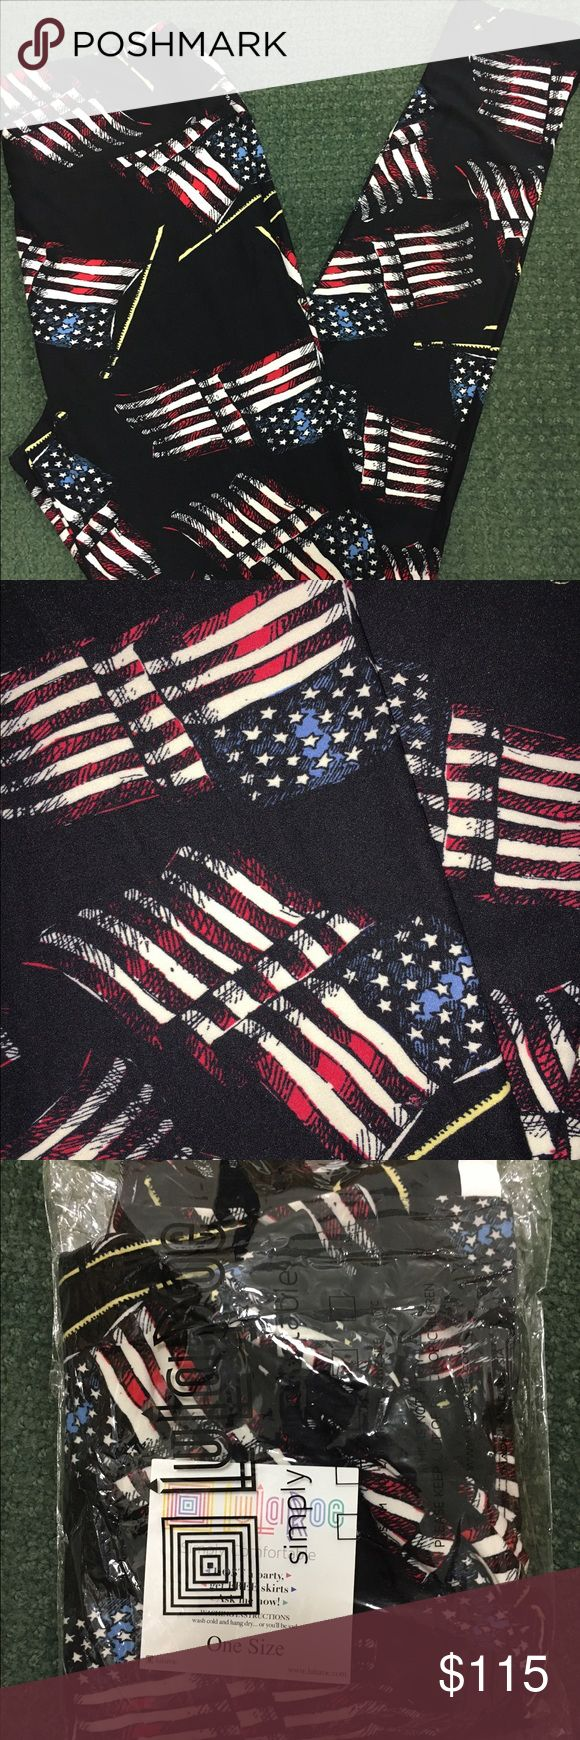 Lularoe RARE OS BLACK AMERICAN FLAG PRINT  JUST RELEASED! Unicorn! Brand new, RARE HARD TO FIND HTF, unworn, Lularoe, OS One Size print pattern Leggings. MADE IN CHINA!